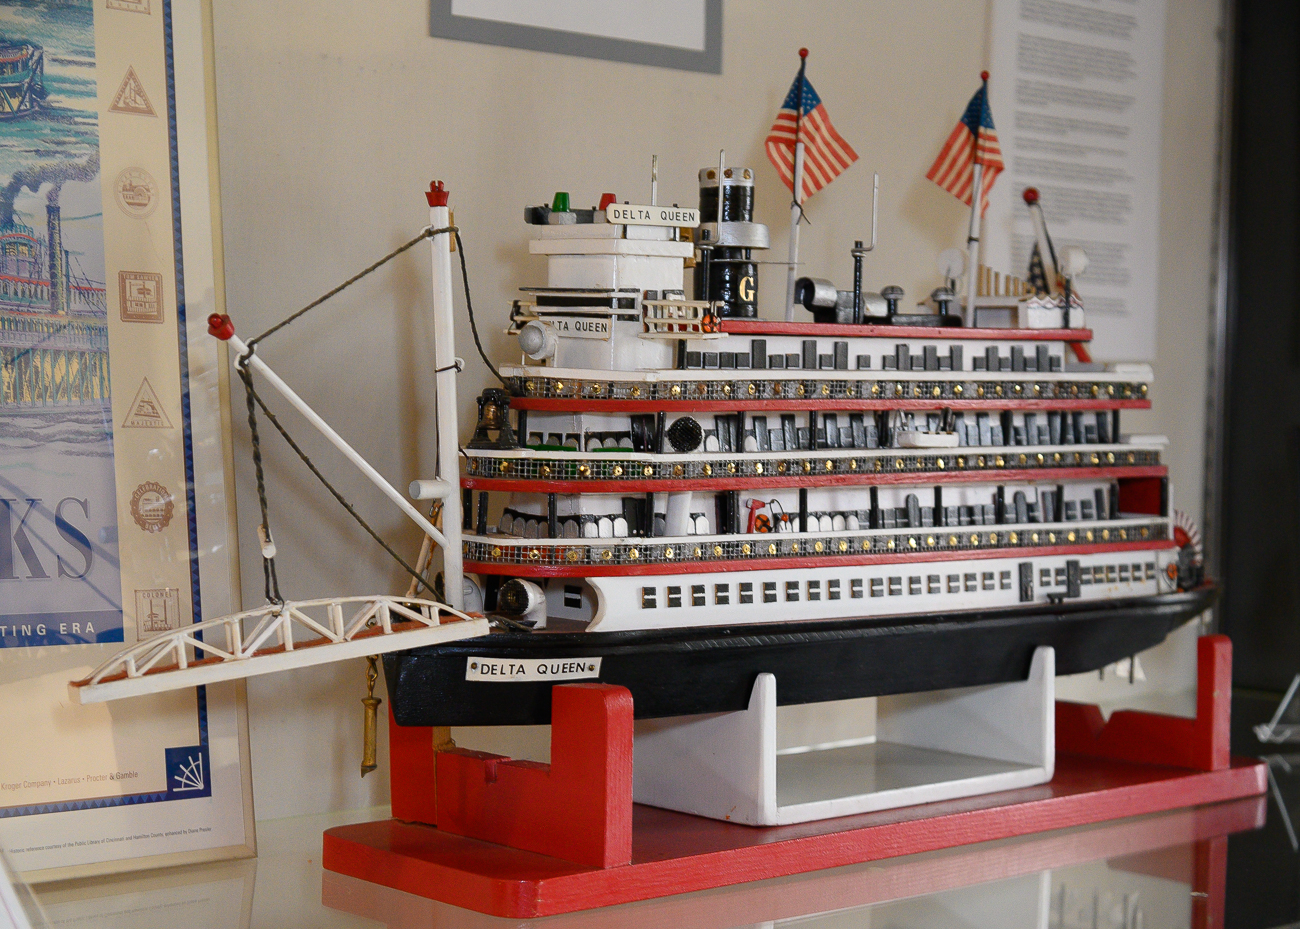 Several steamboat models sit on top of display cases to acknowledge Rising Sun's history as a prosperous river town. / Image: Phil Armstrong, Cincinnati Refined // Published: 1.7.20